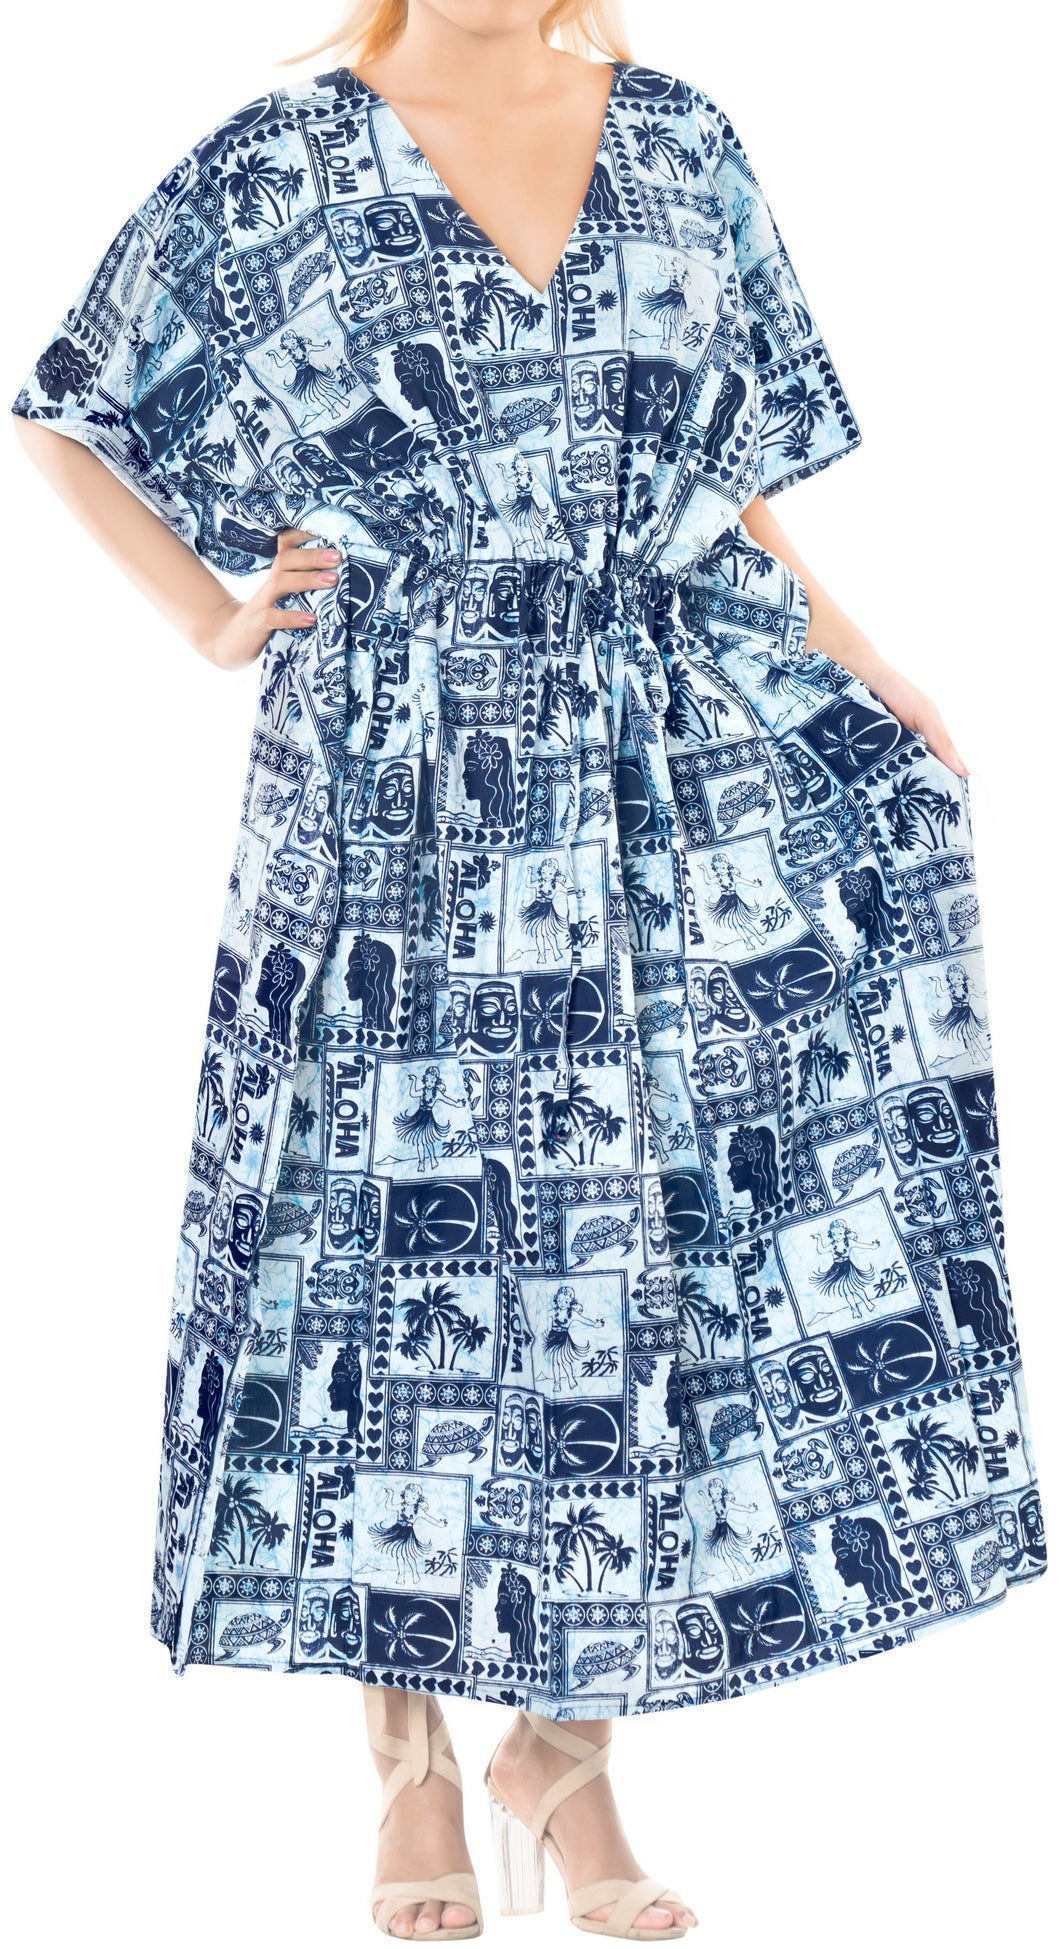 la-leela-lounge-cotton-printed-long-caftan-dress-women-navy-blue_577-osfm-14-22w-l-3x